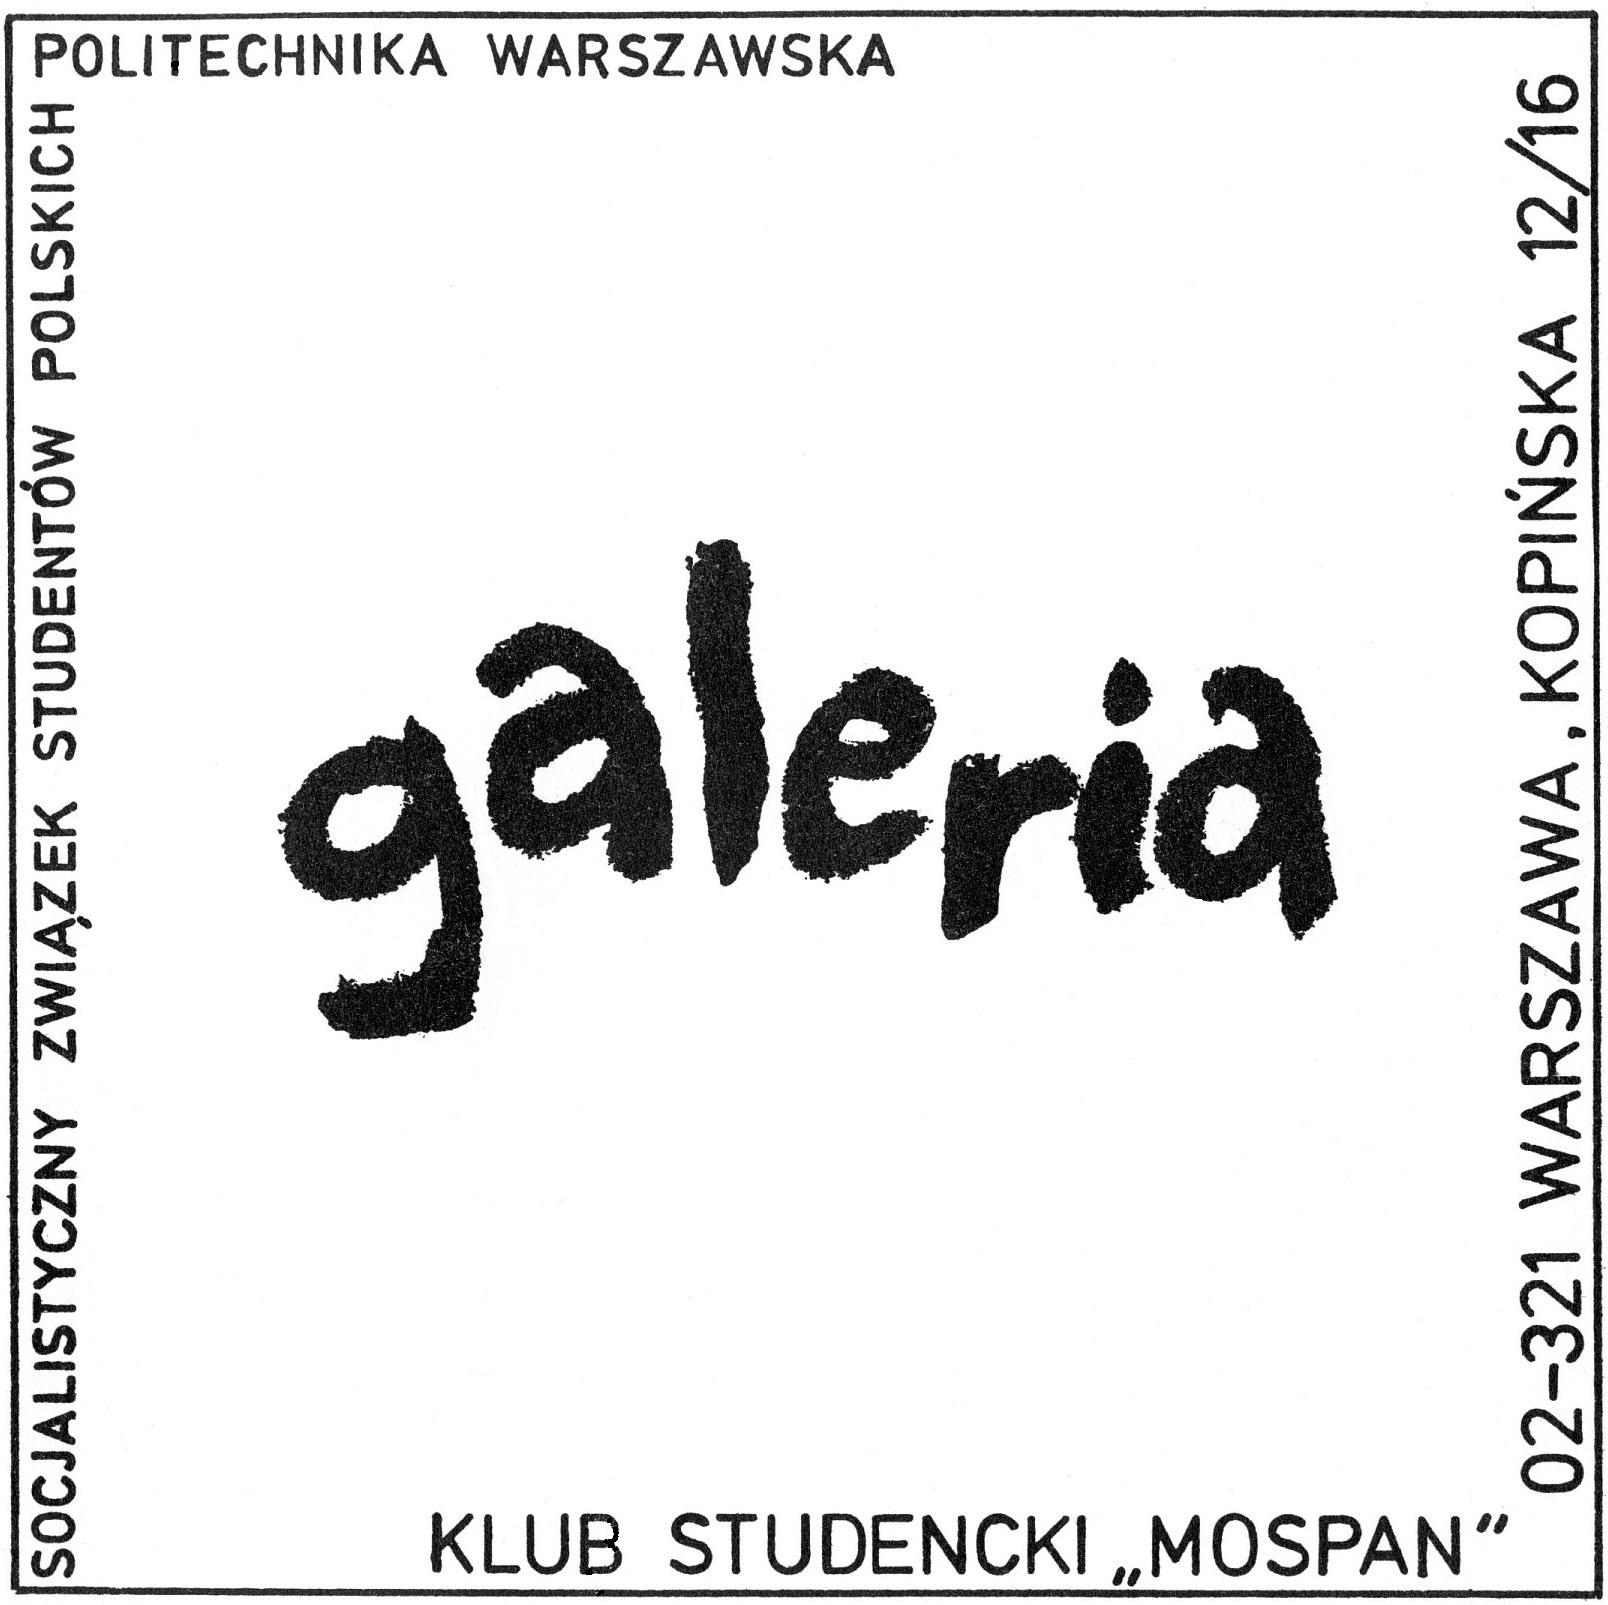 Logo of the Mospan Gallery created by Tomasz Sikorski.